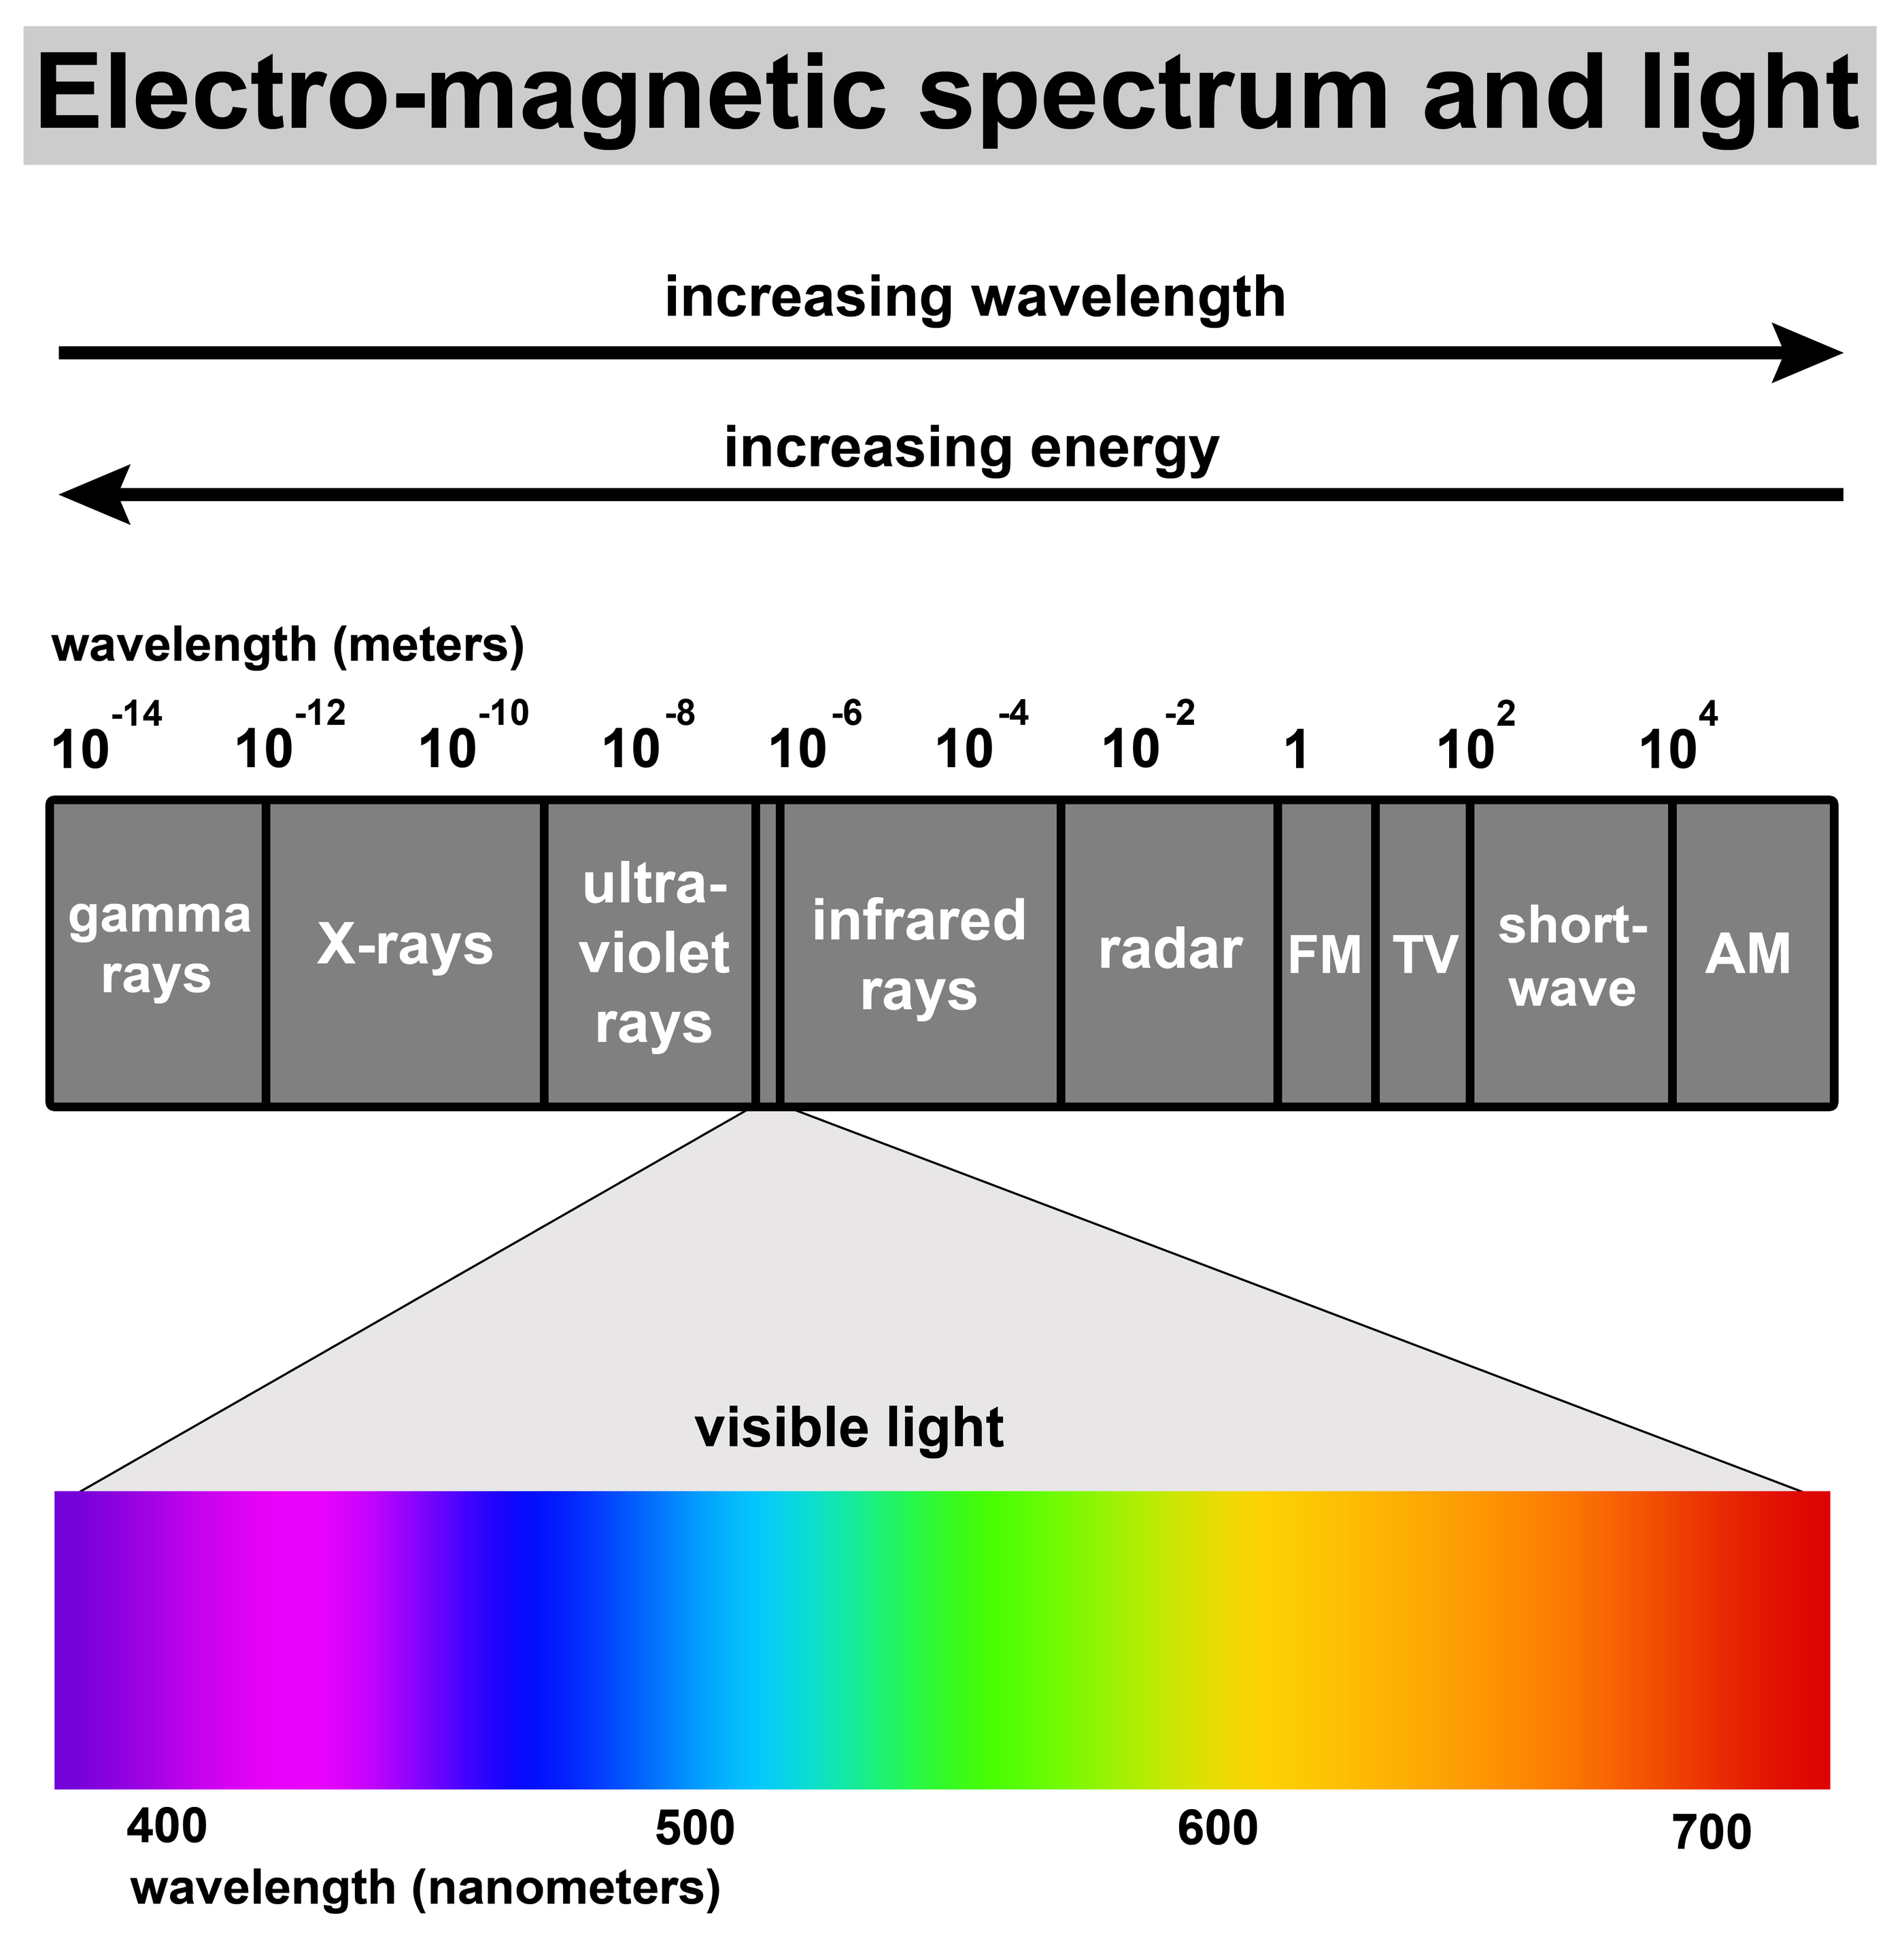 visible light spectrum frequency and wavelength relationship